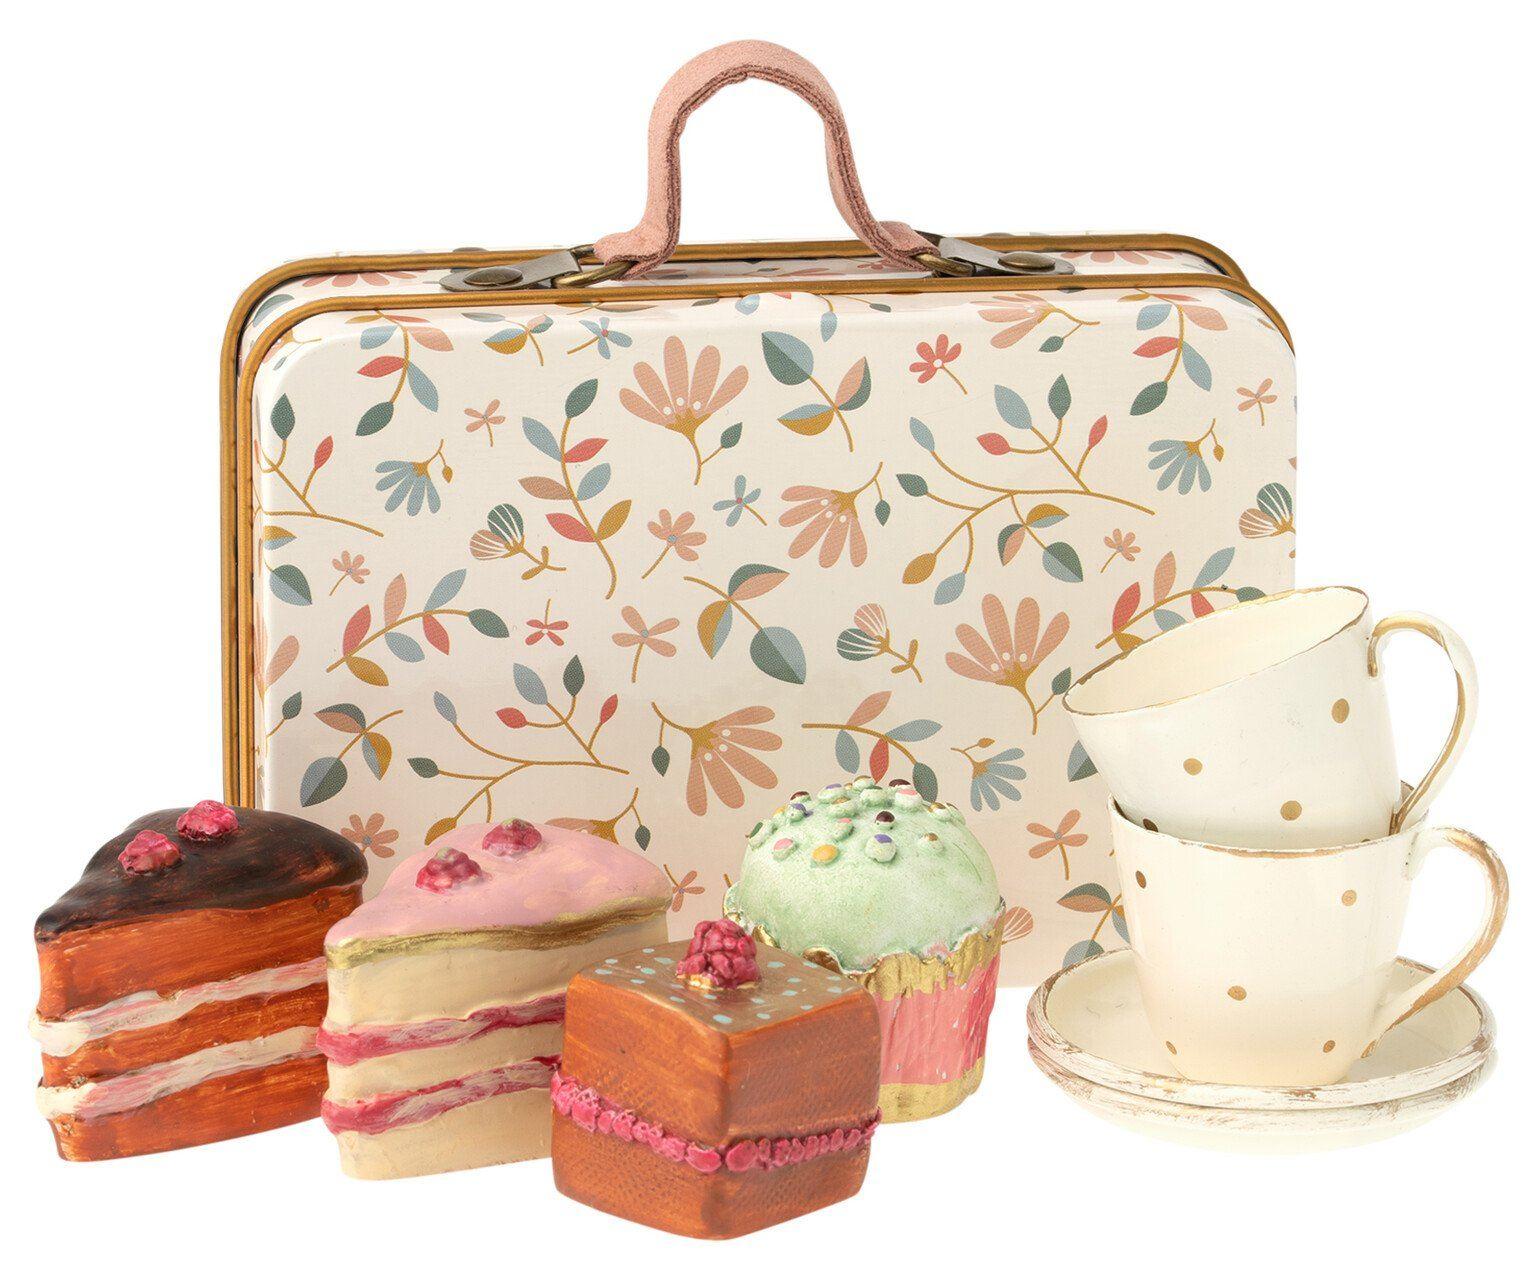 Maileg Cake Set in Suitcase - BouChic